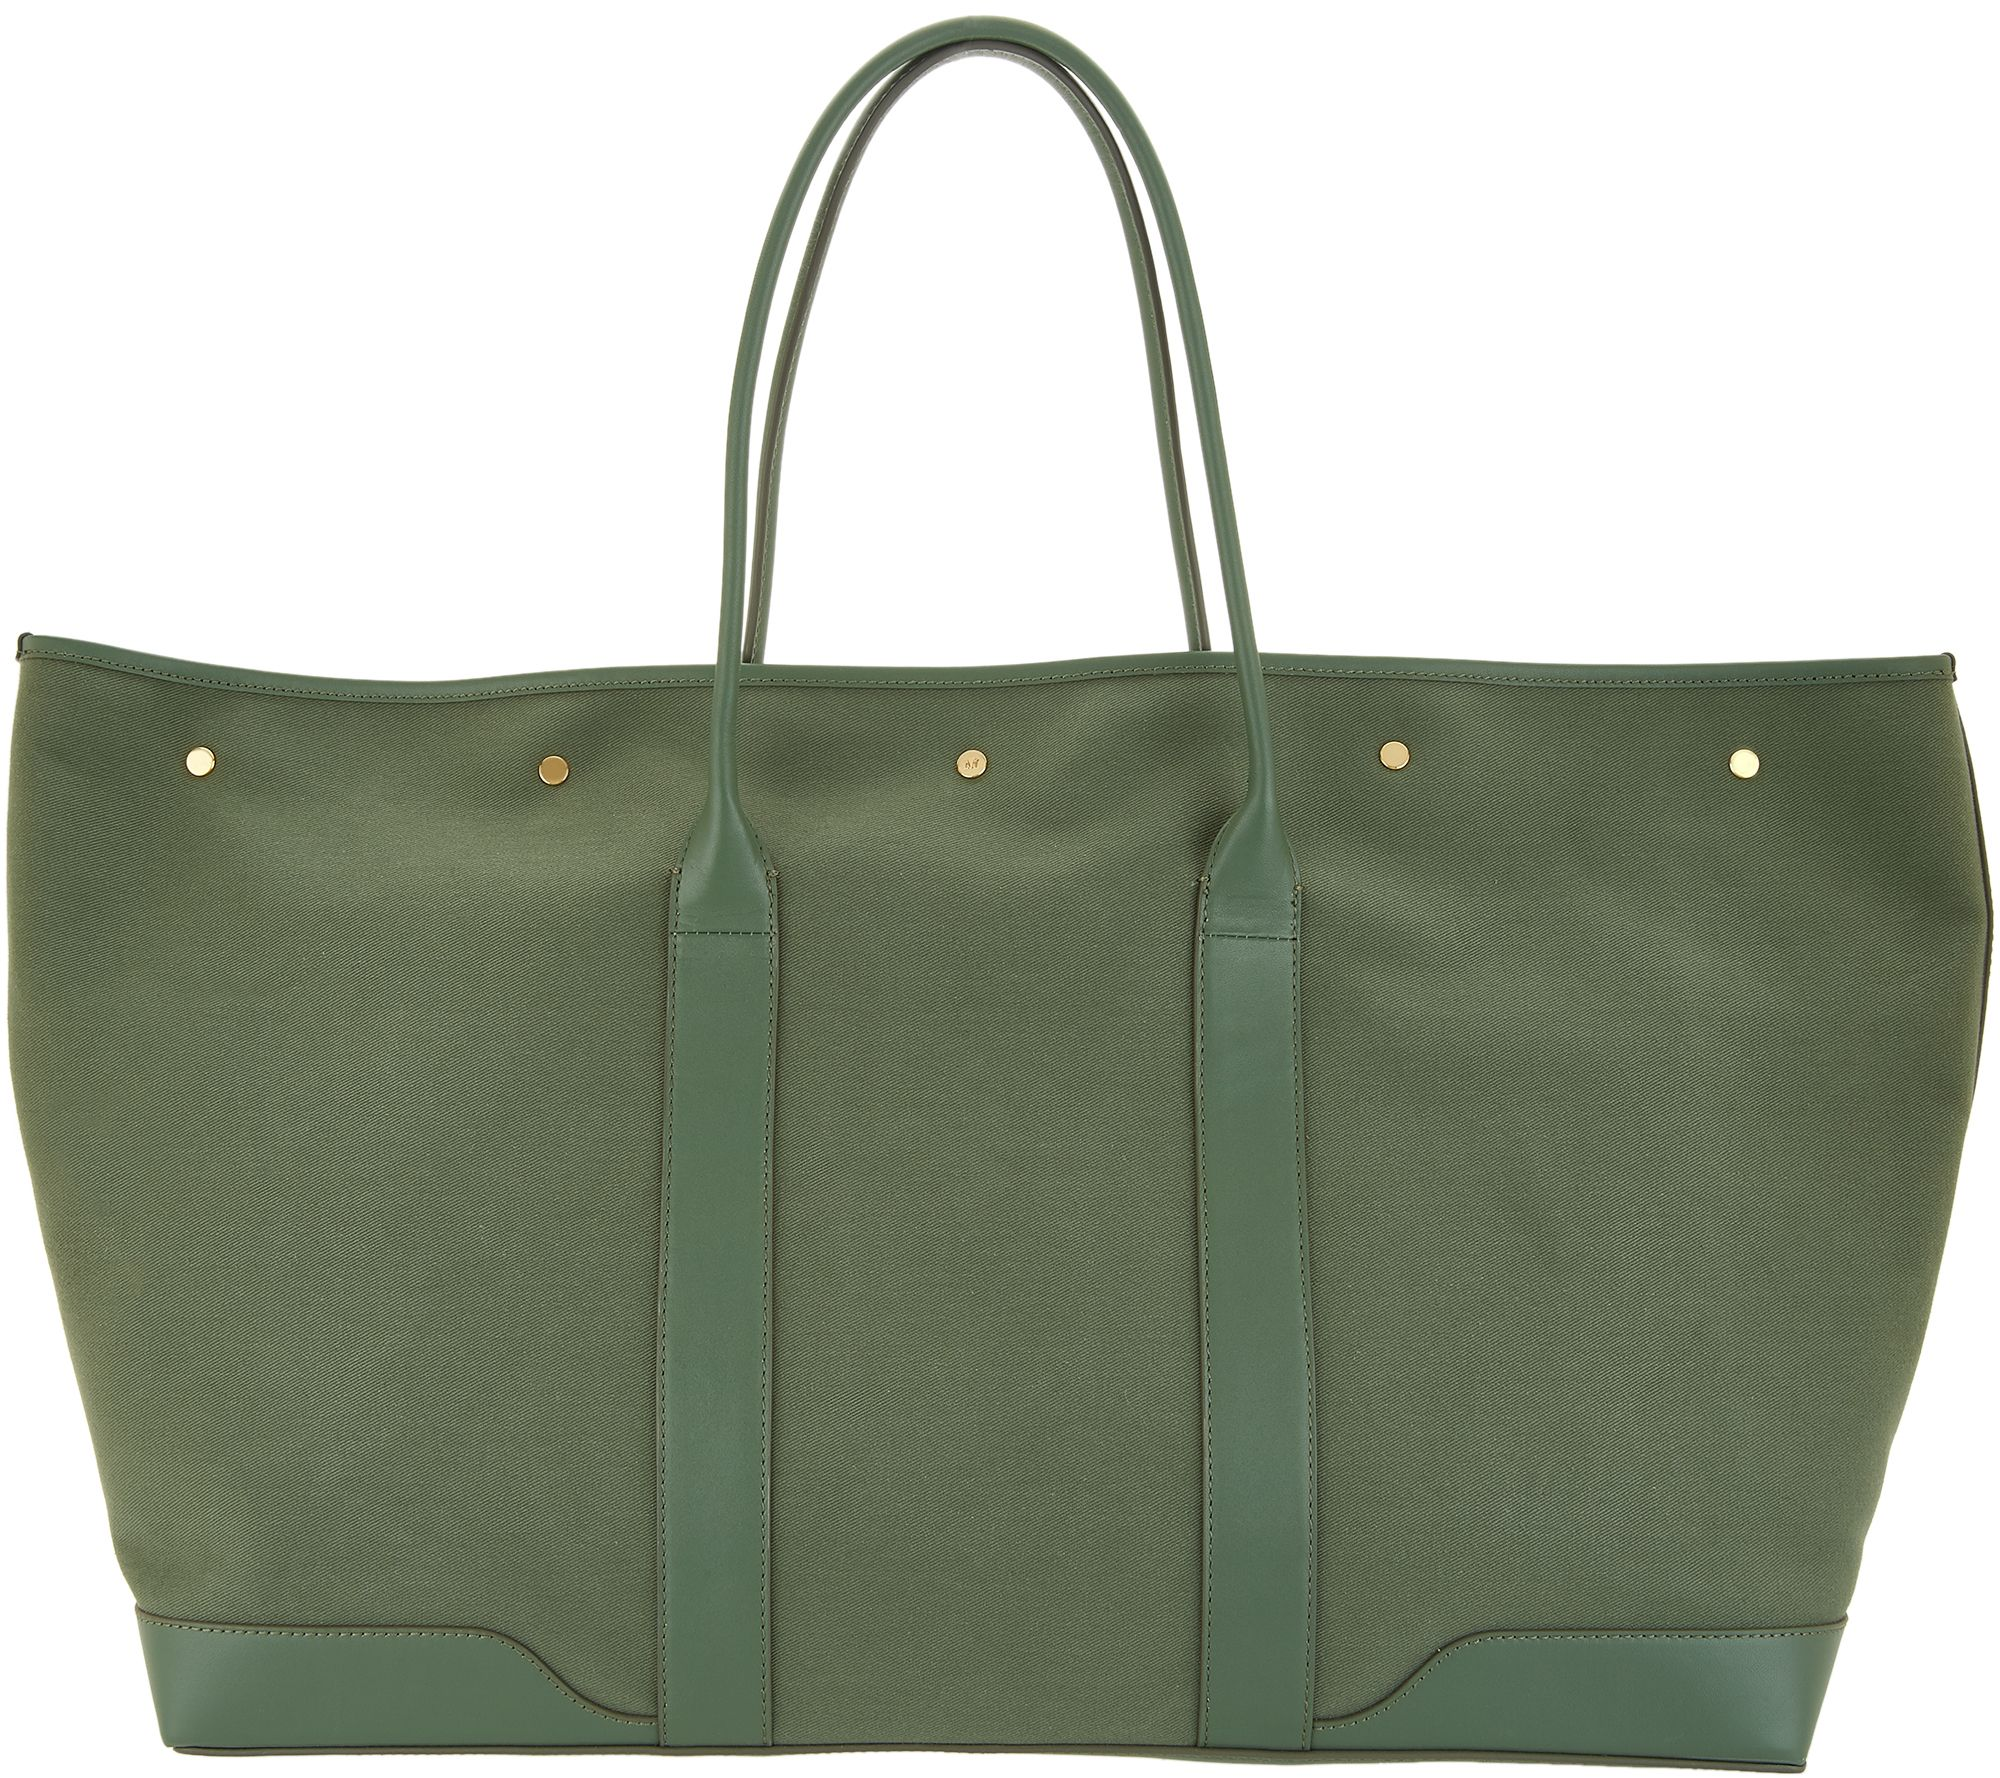 Martha Stewart Large Canvas Tote with Leather Trim - Page 1 — QVC.com